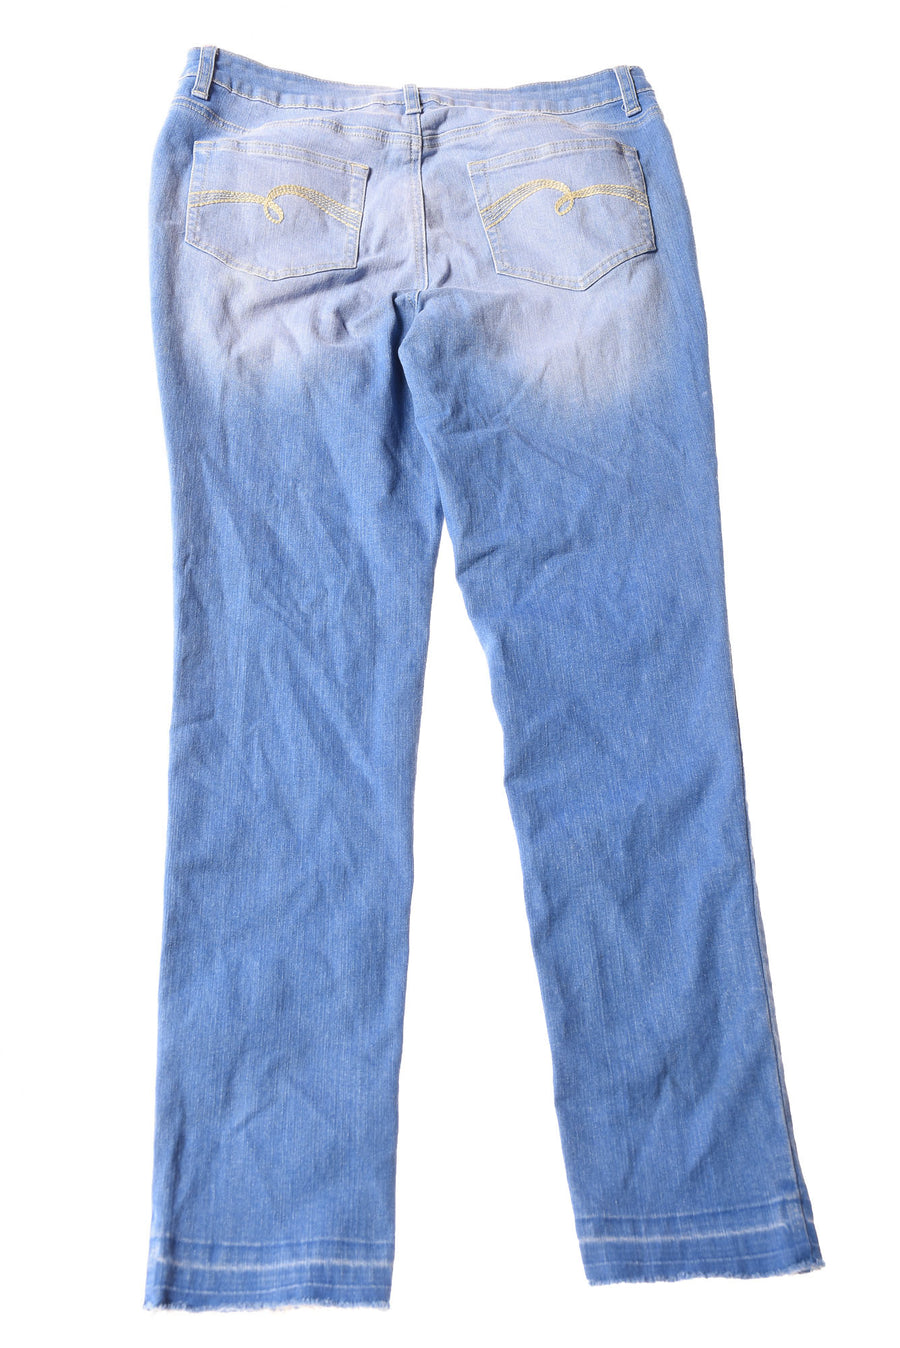 USED Justice Girl's Jeans 16 Blue